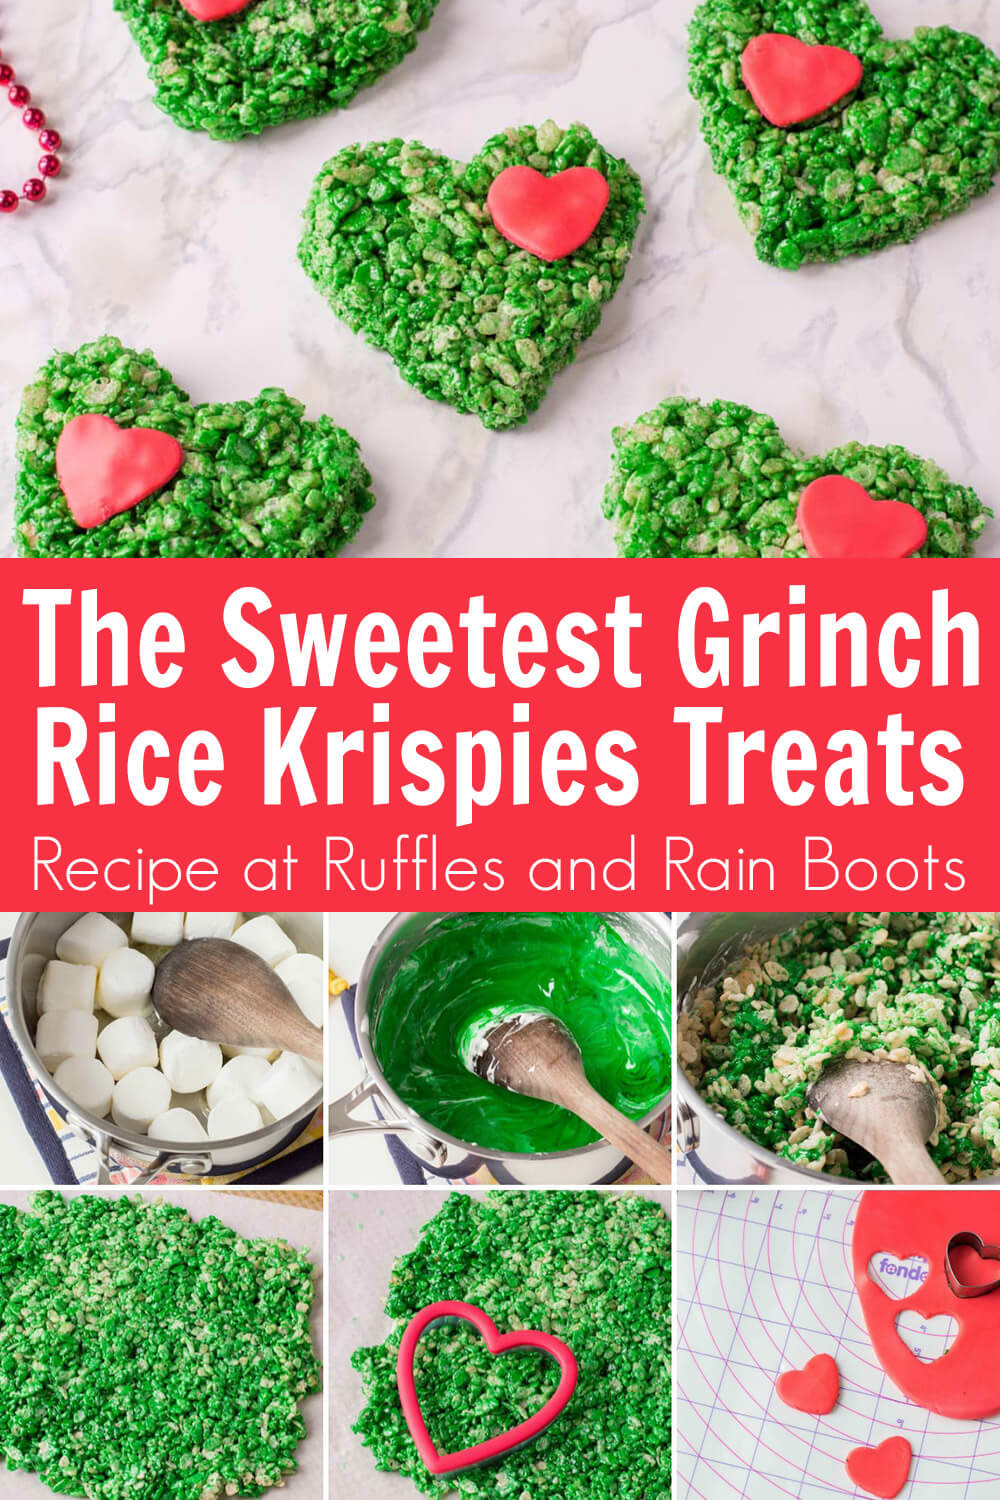 photo collage of how to make grinch rice krispies treats with text which reads the sweetest grinch rice krispies treats